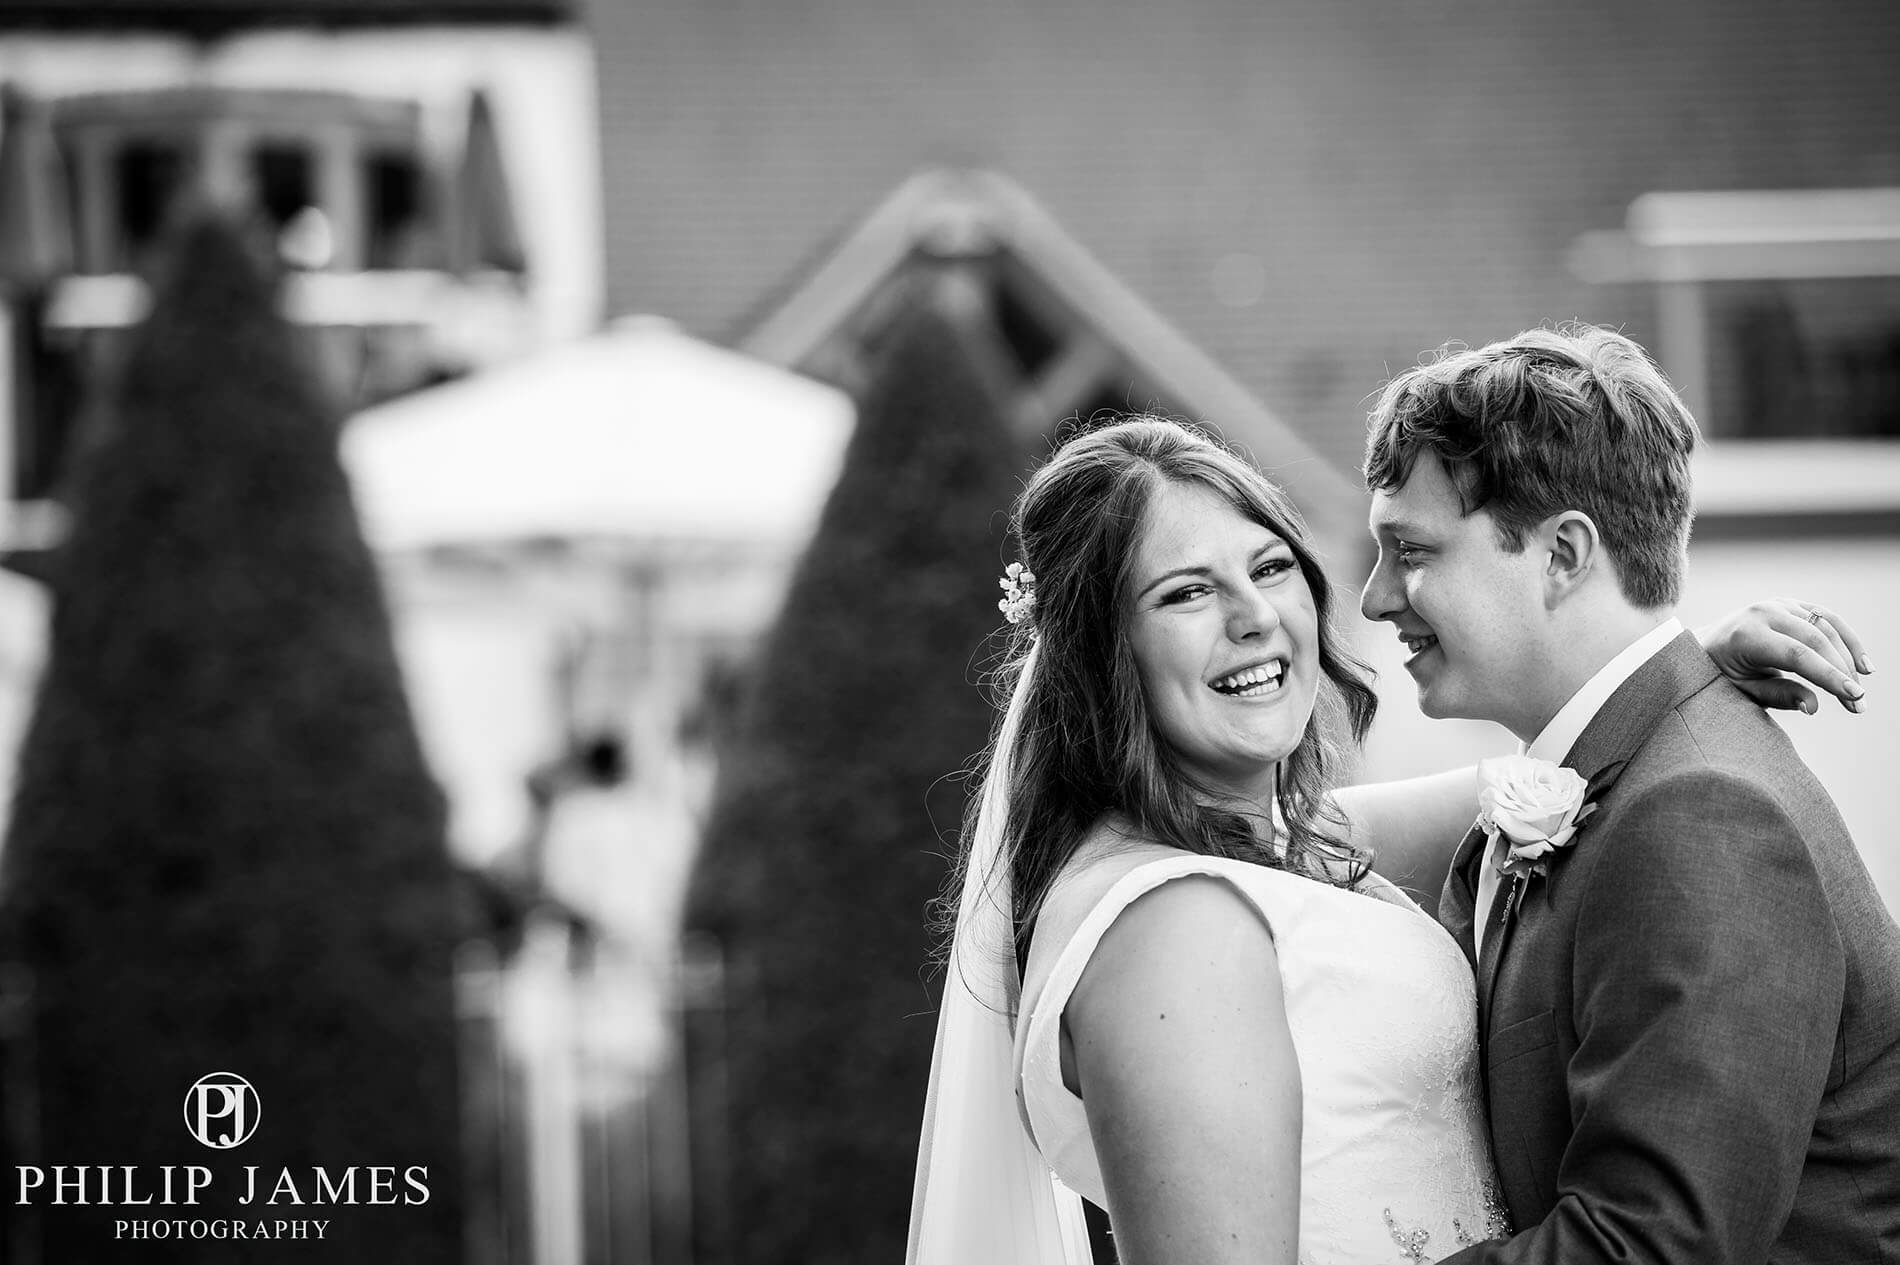 Birmingham Wedding Photographer - Philip James Photography based in Solihull (54 of 68)